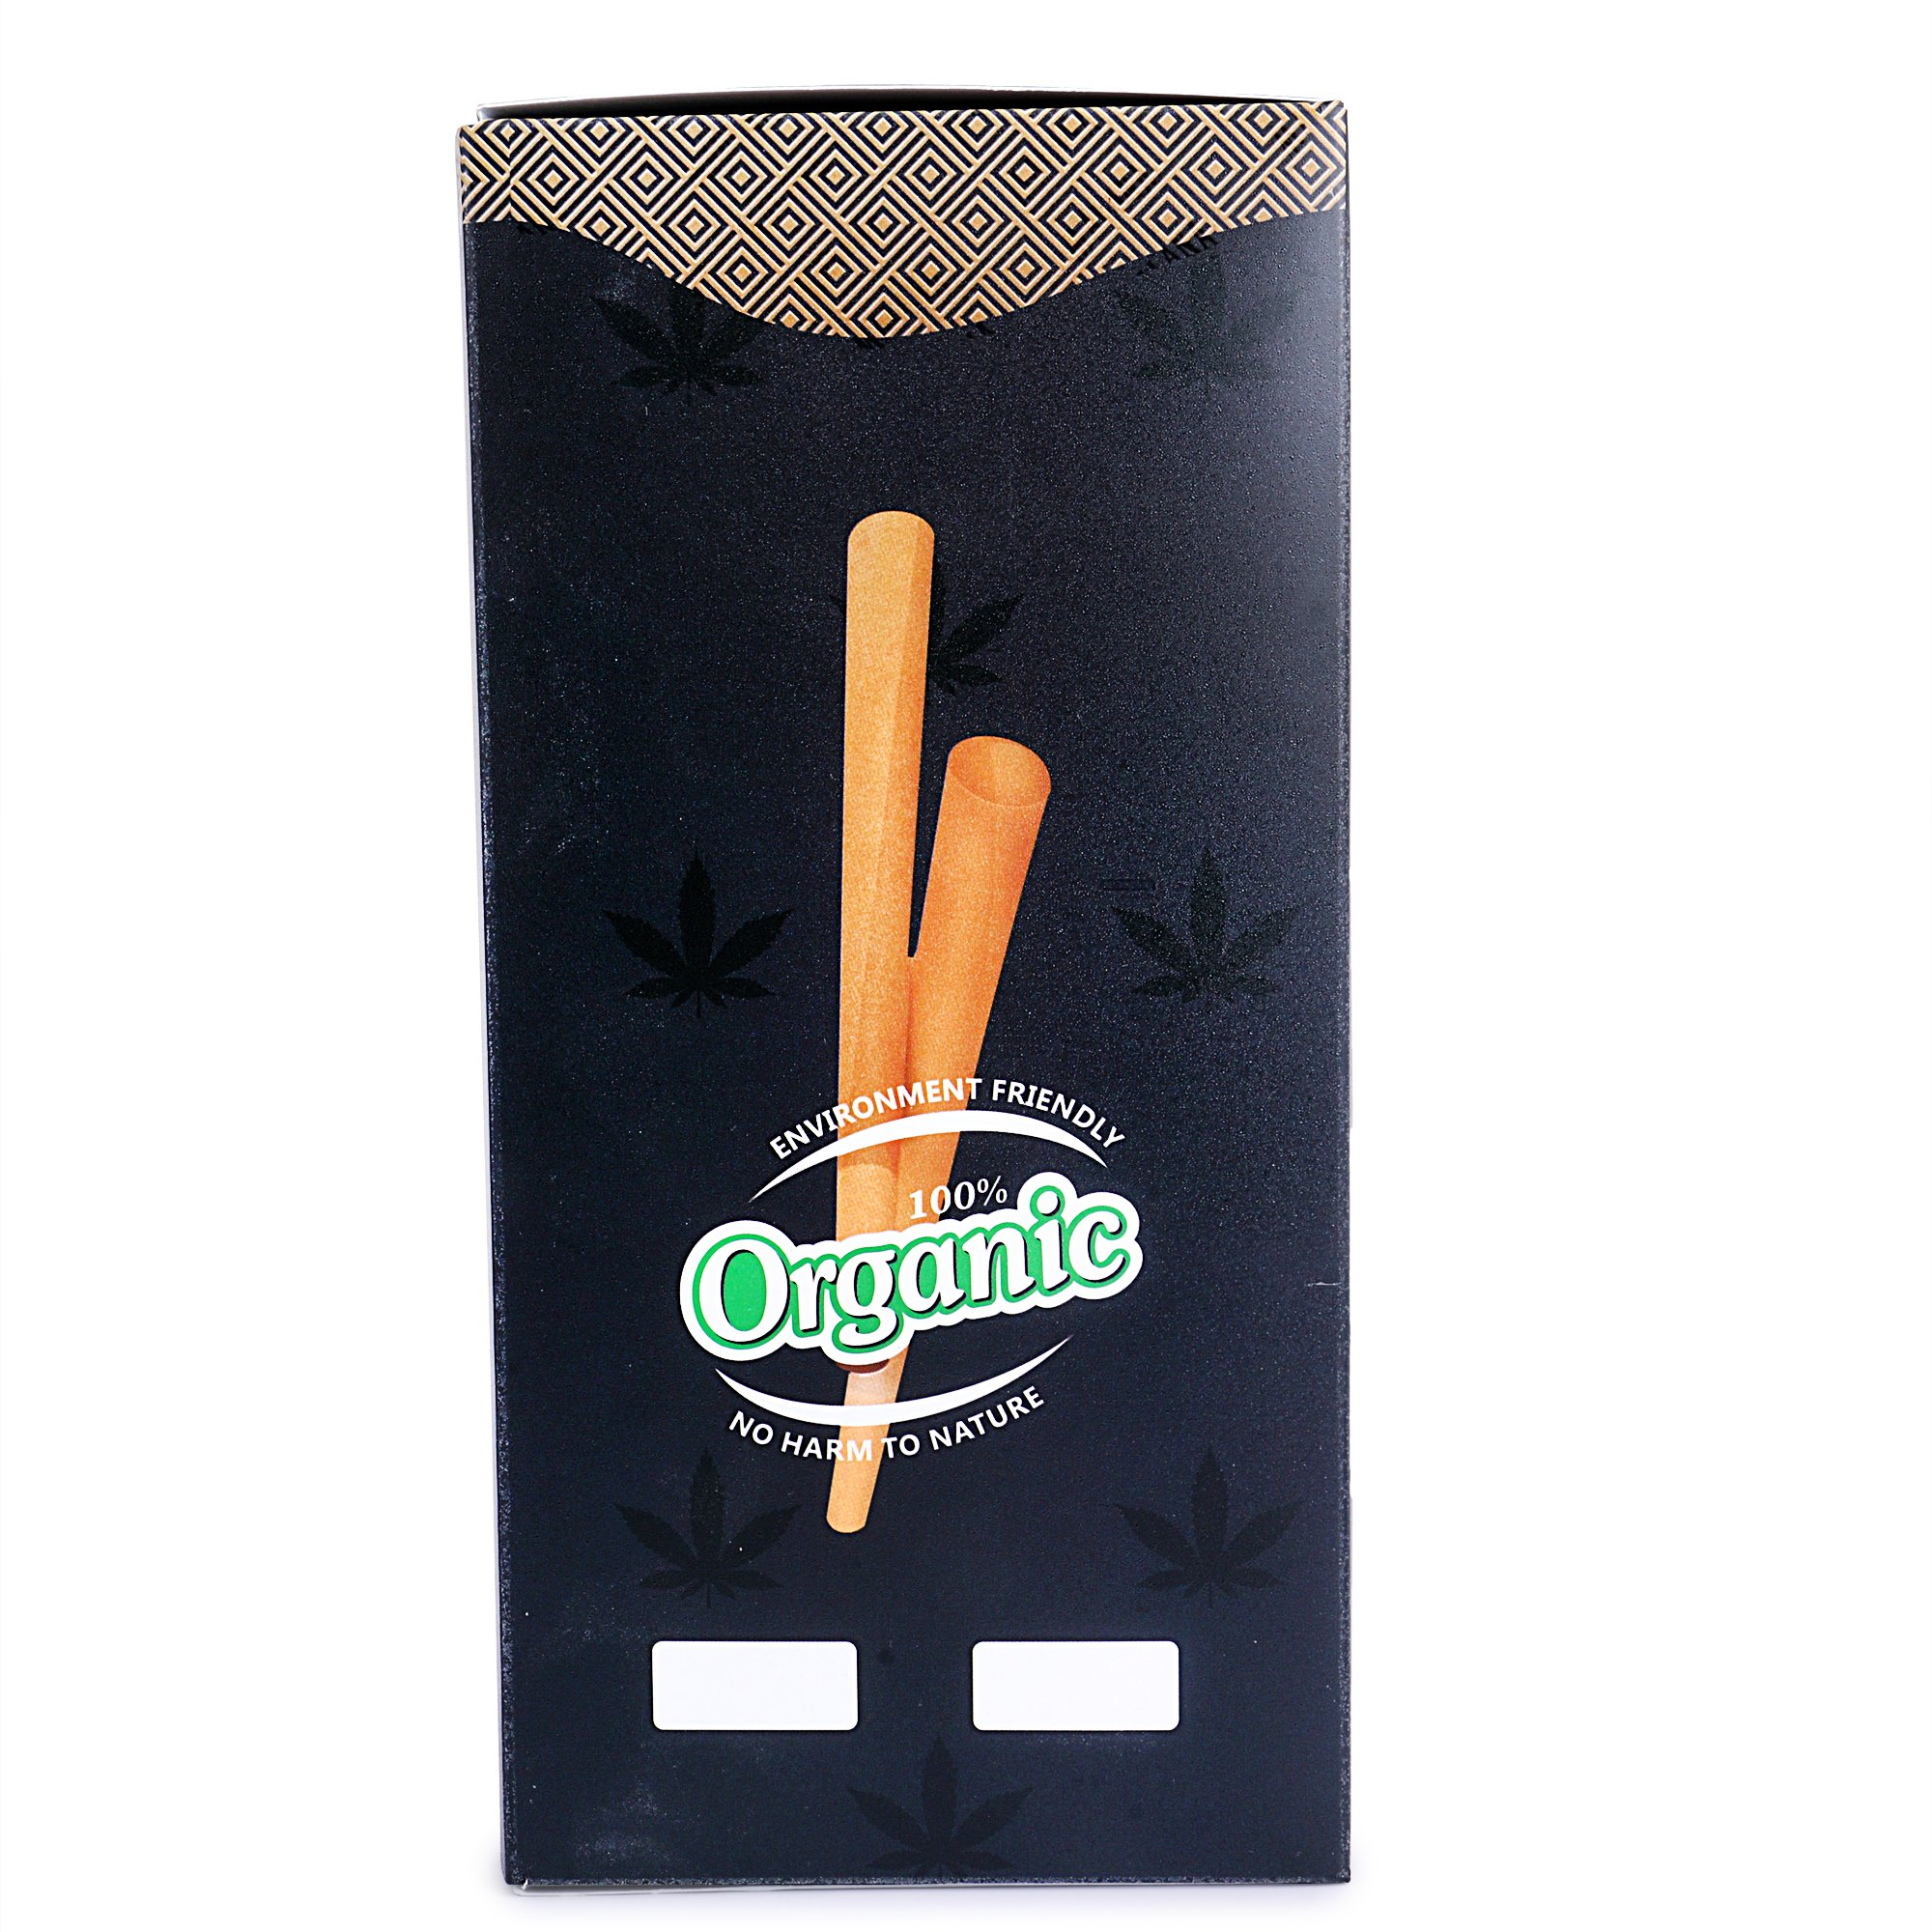 Malana Pre Rolled Cones - King Size 800 Count (Natural Brown Paper) 109/26 by Roll With Us Depot (Image #3)